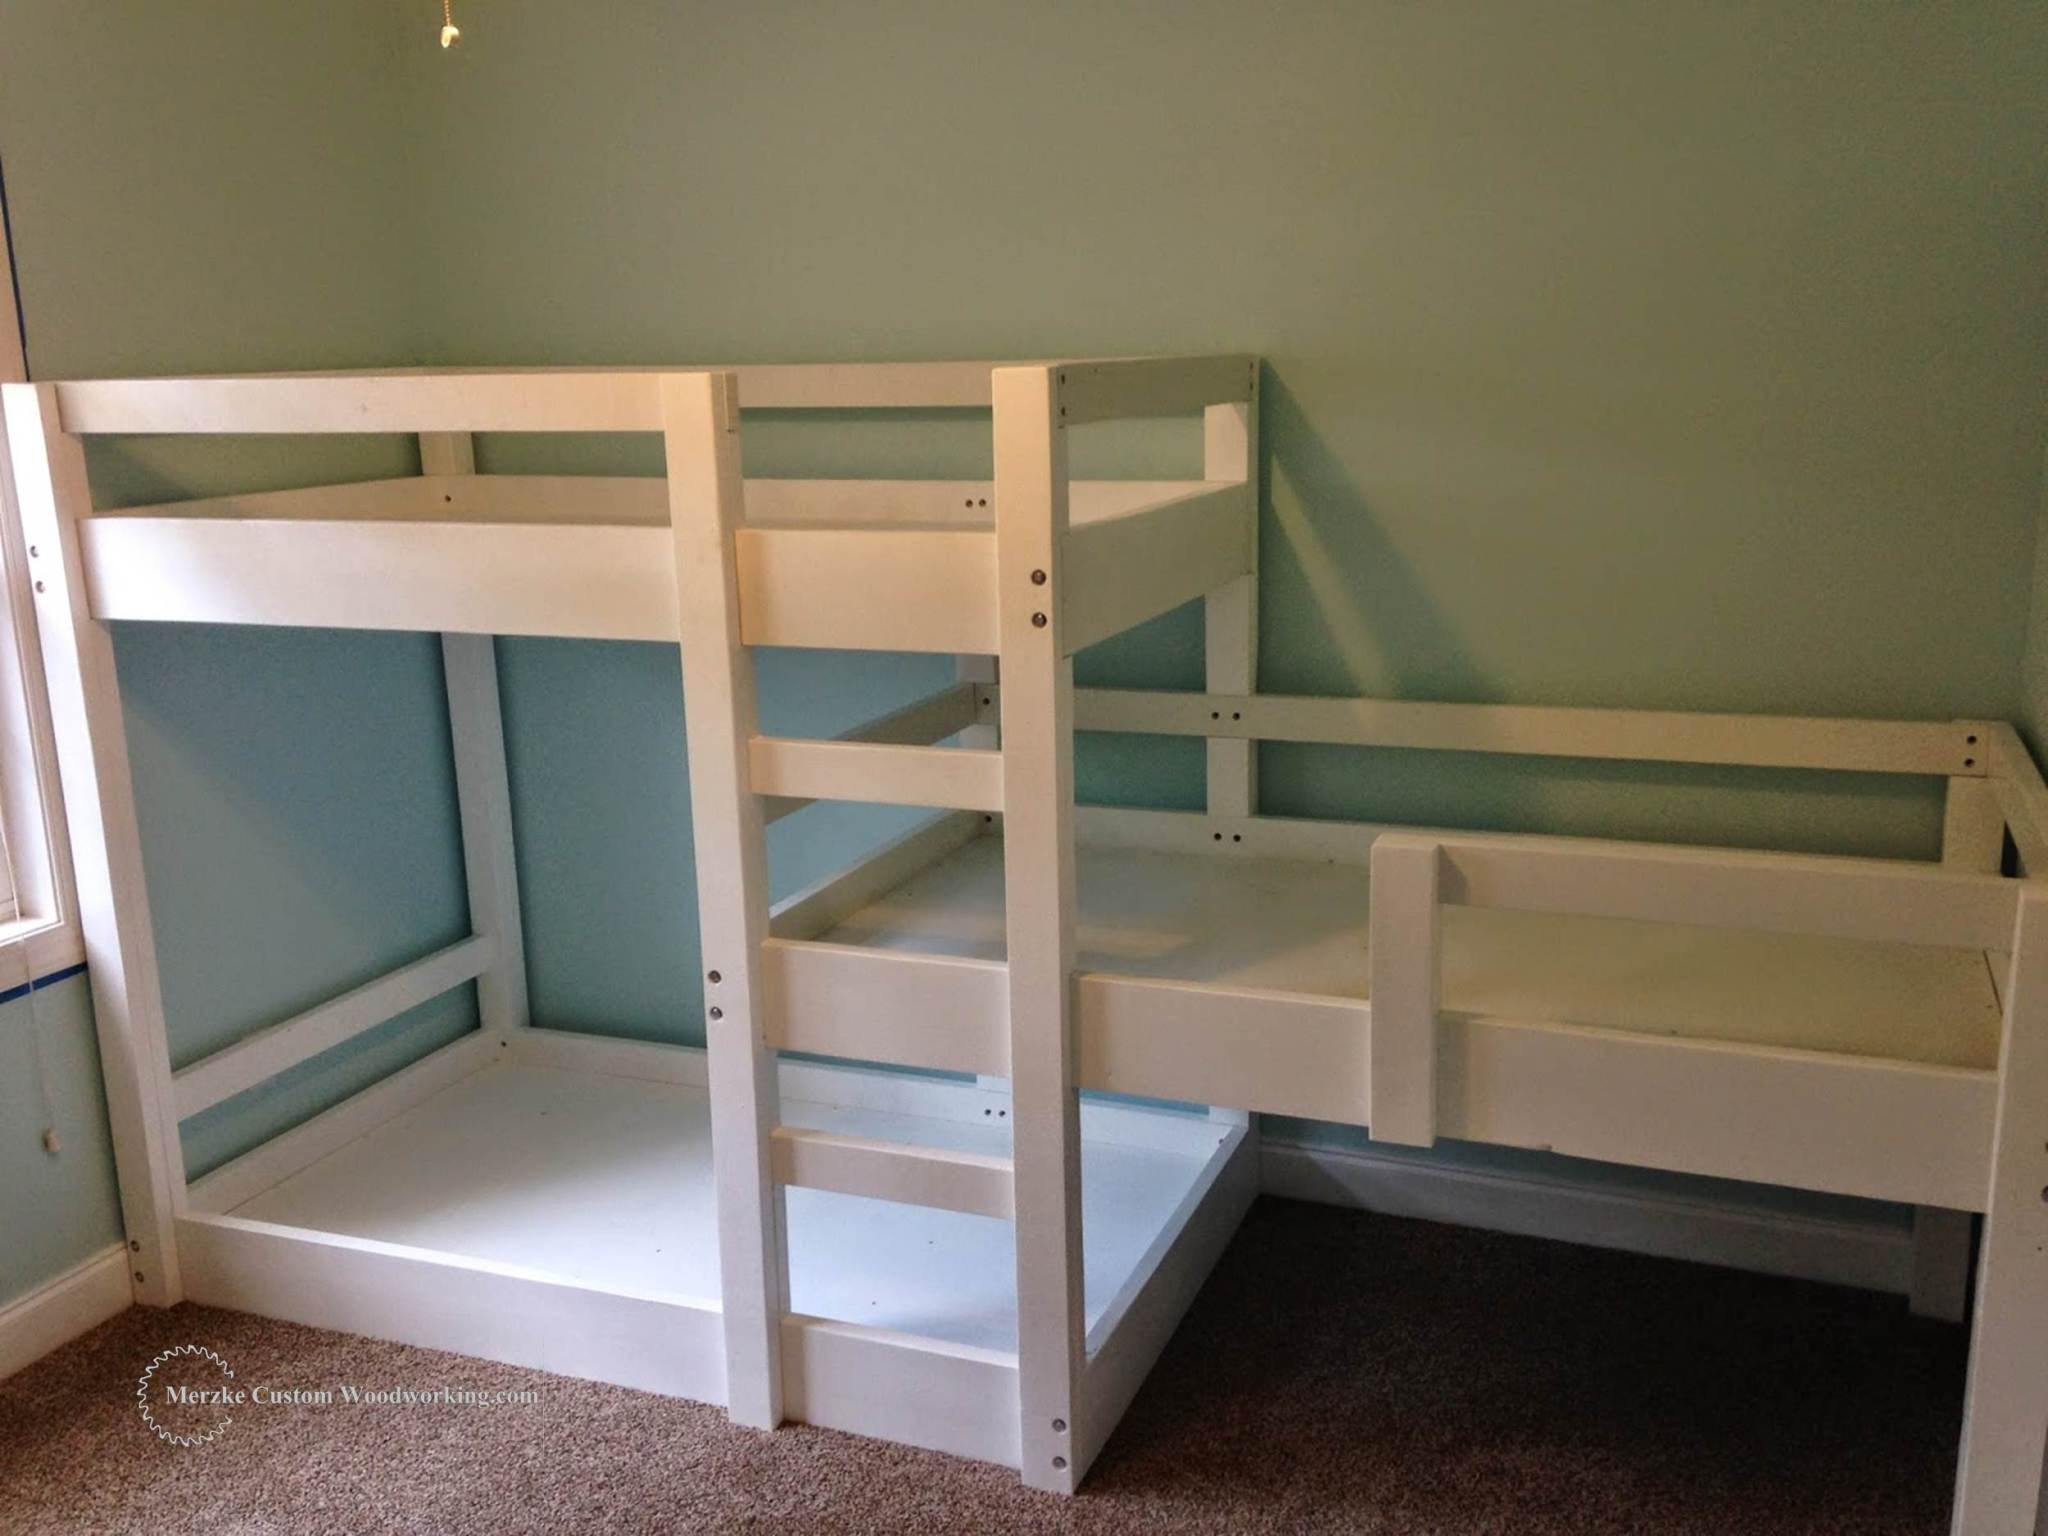 Bunk Room Plans | Bunk Beds for Small Rooms | Double Deck Bed with Cabinet